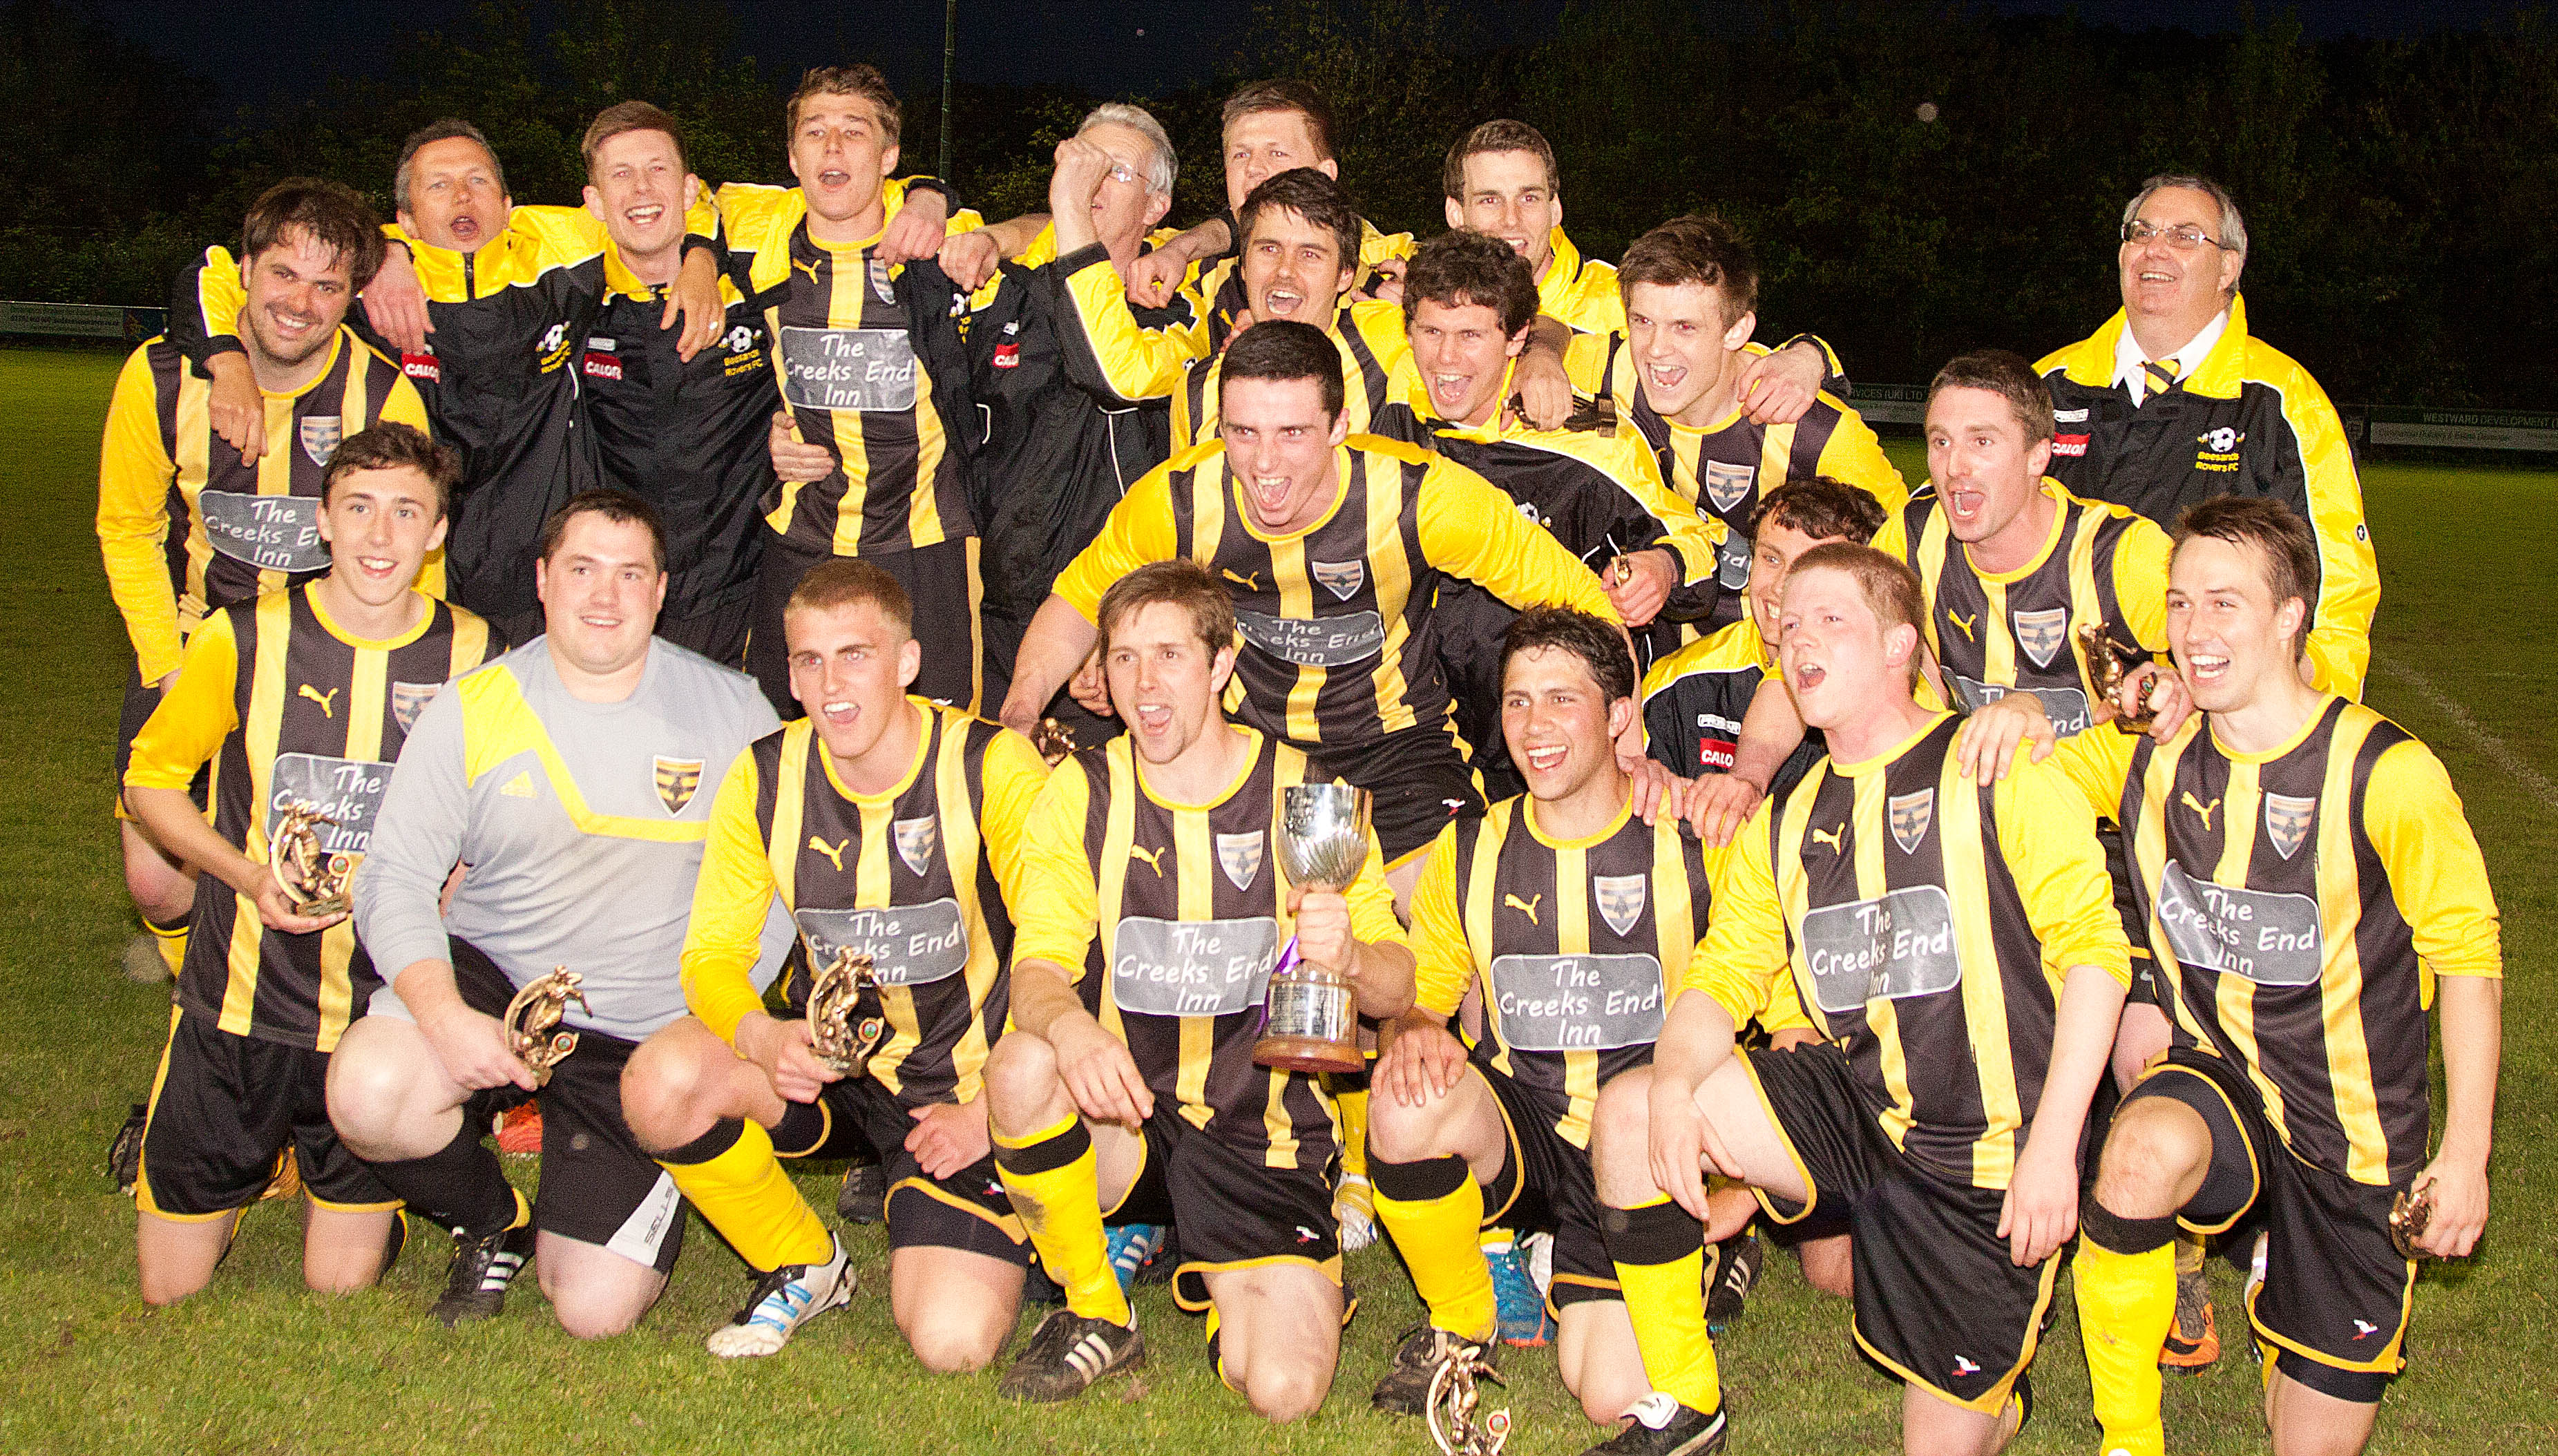 beesands rovers lidstone cup 2014 south devon football league sdfl sport south devon